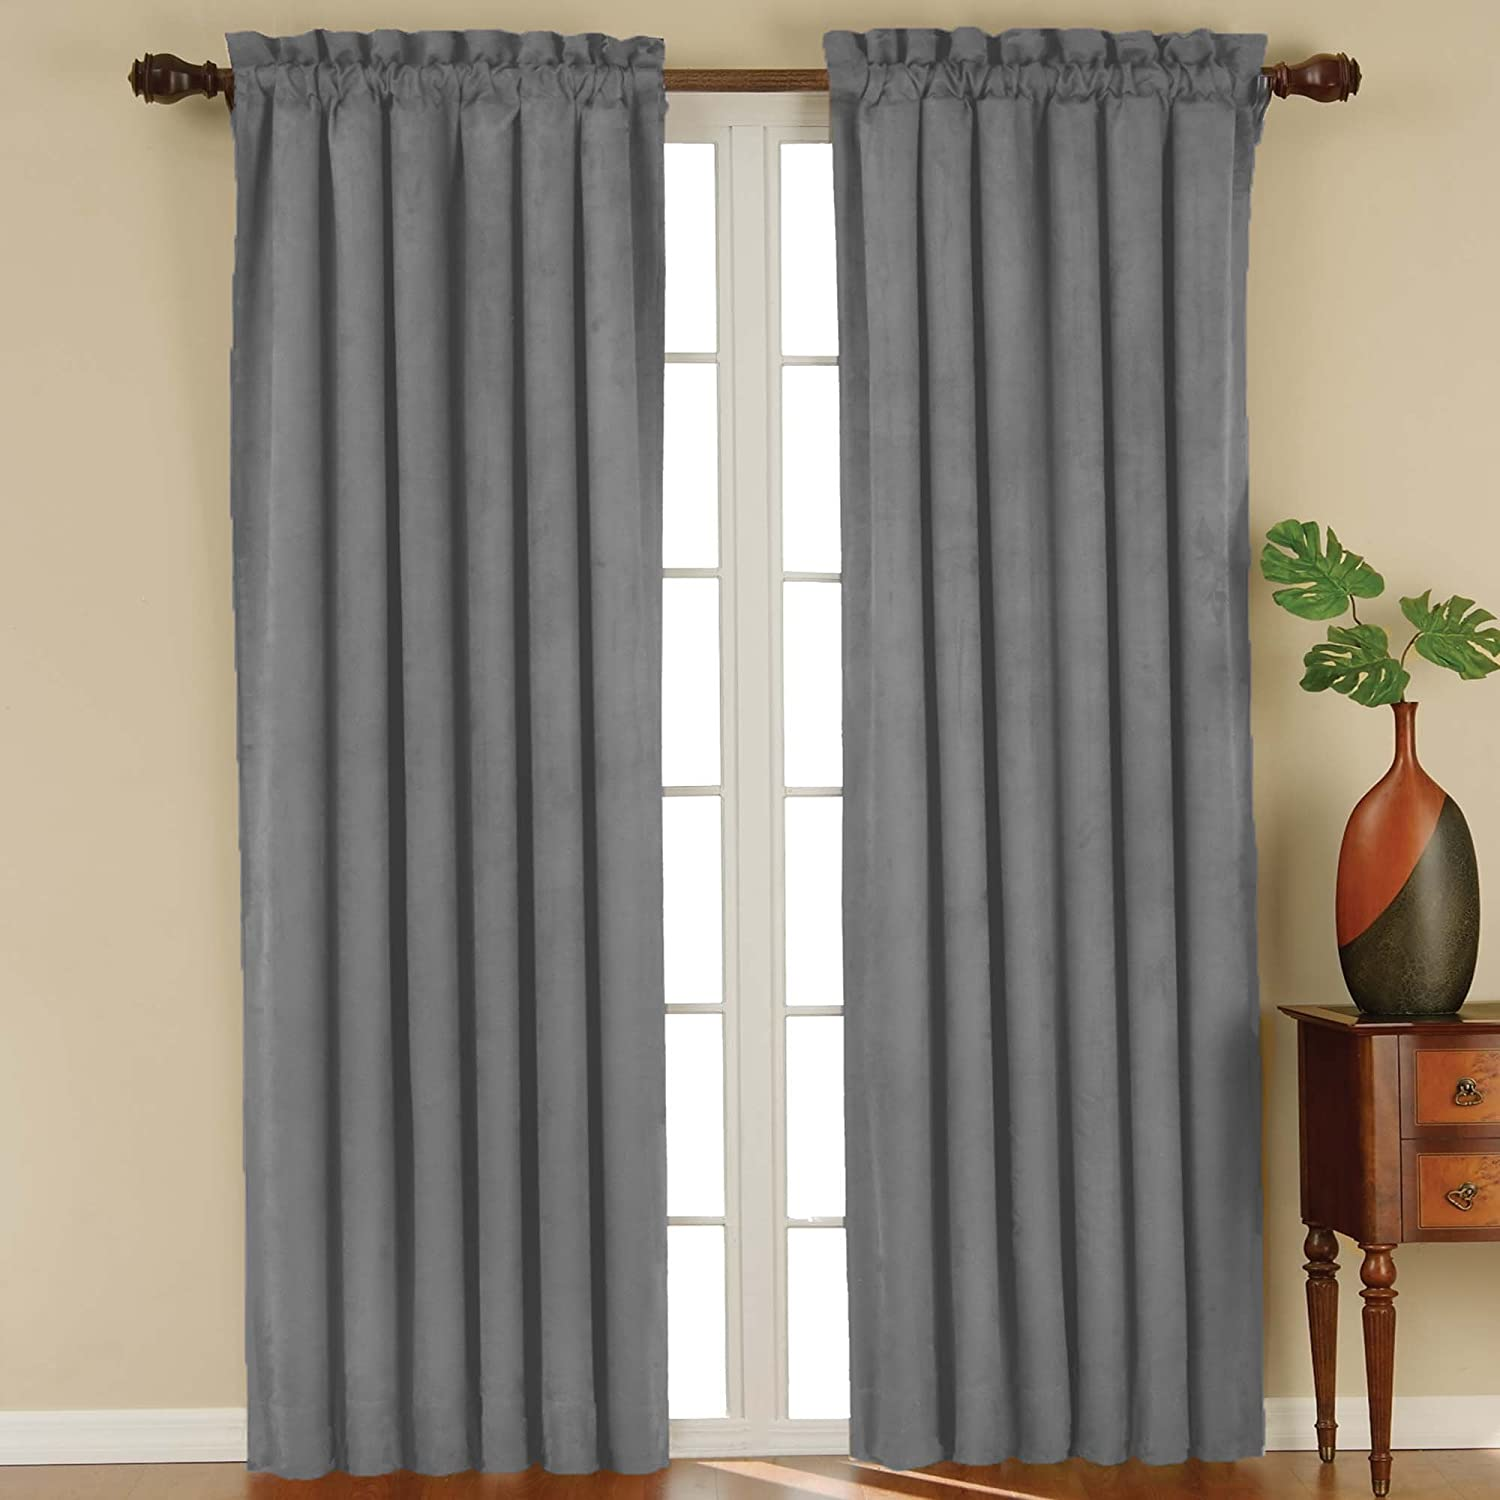 Eclipse suede blackout panel de cortina de ve envio - Blanquear cortinas ennegrecidas ...